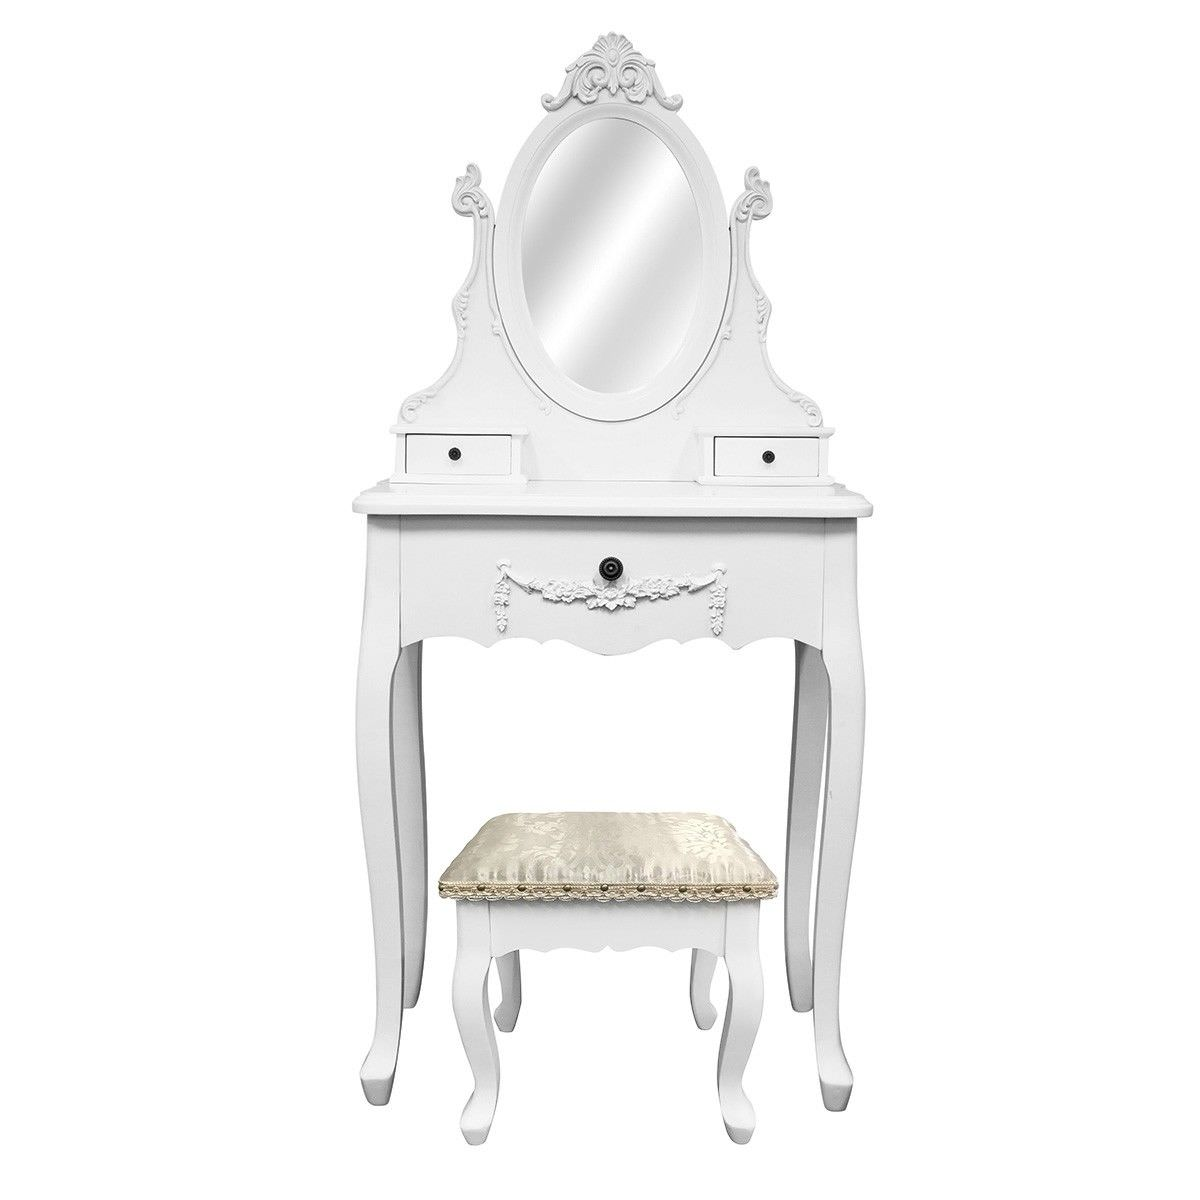 Carville Dressing Table with Ecoles Dressing Stool